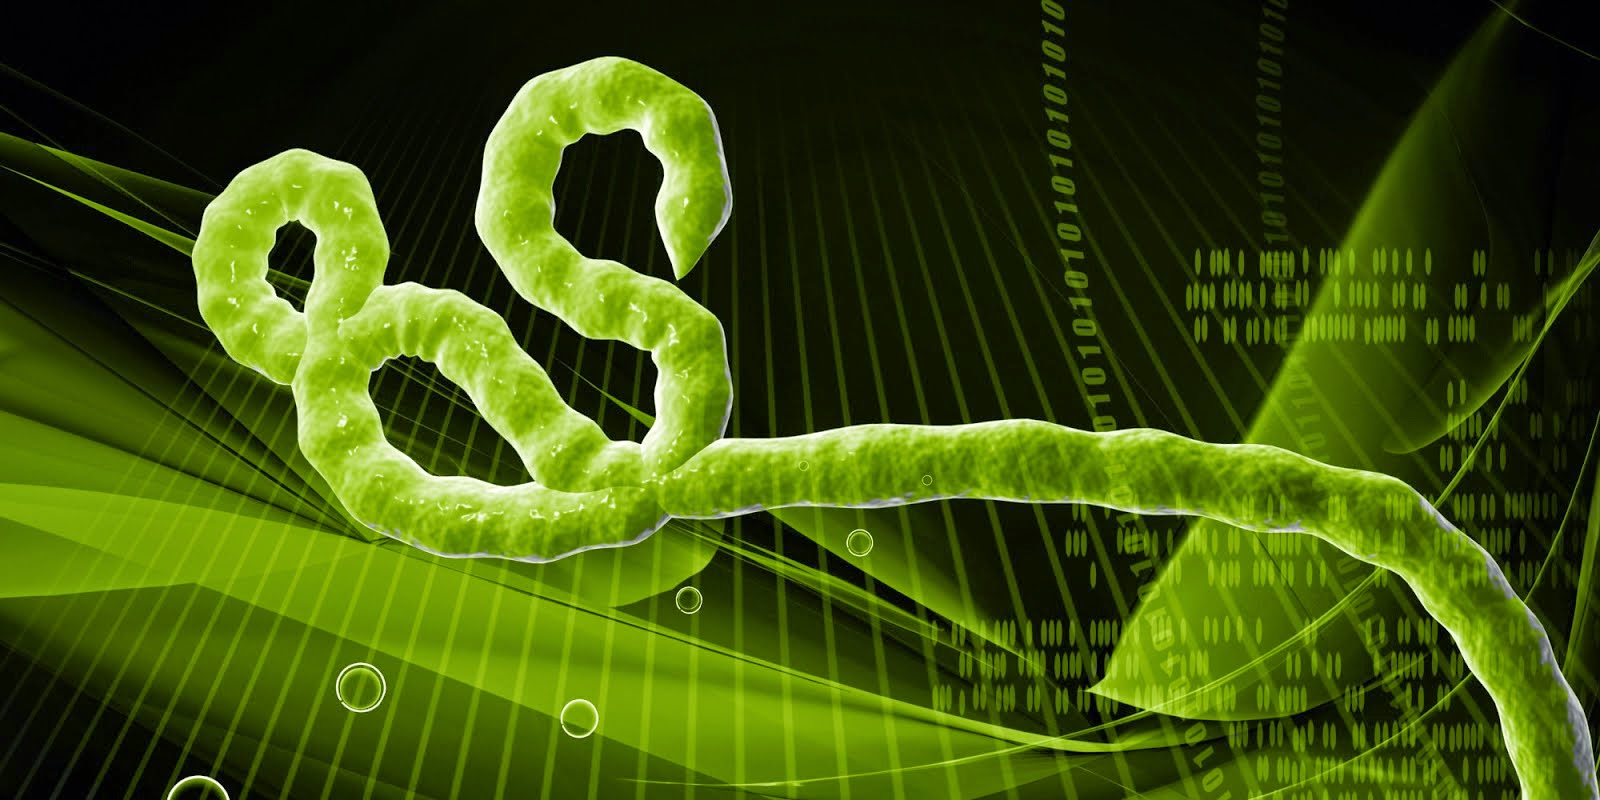 Ebola Virus HD Wallpapers | Download Free High Definition ...